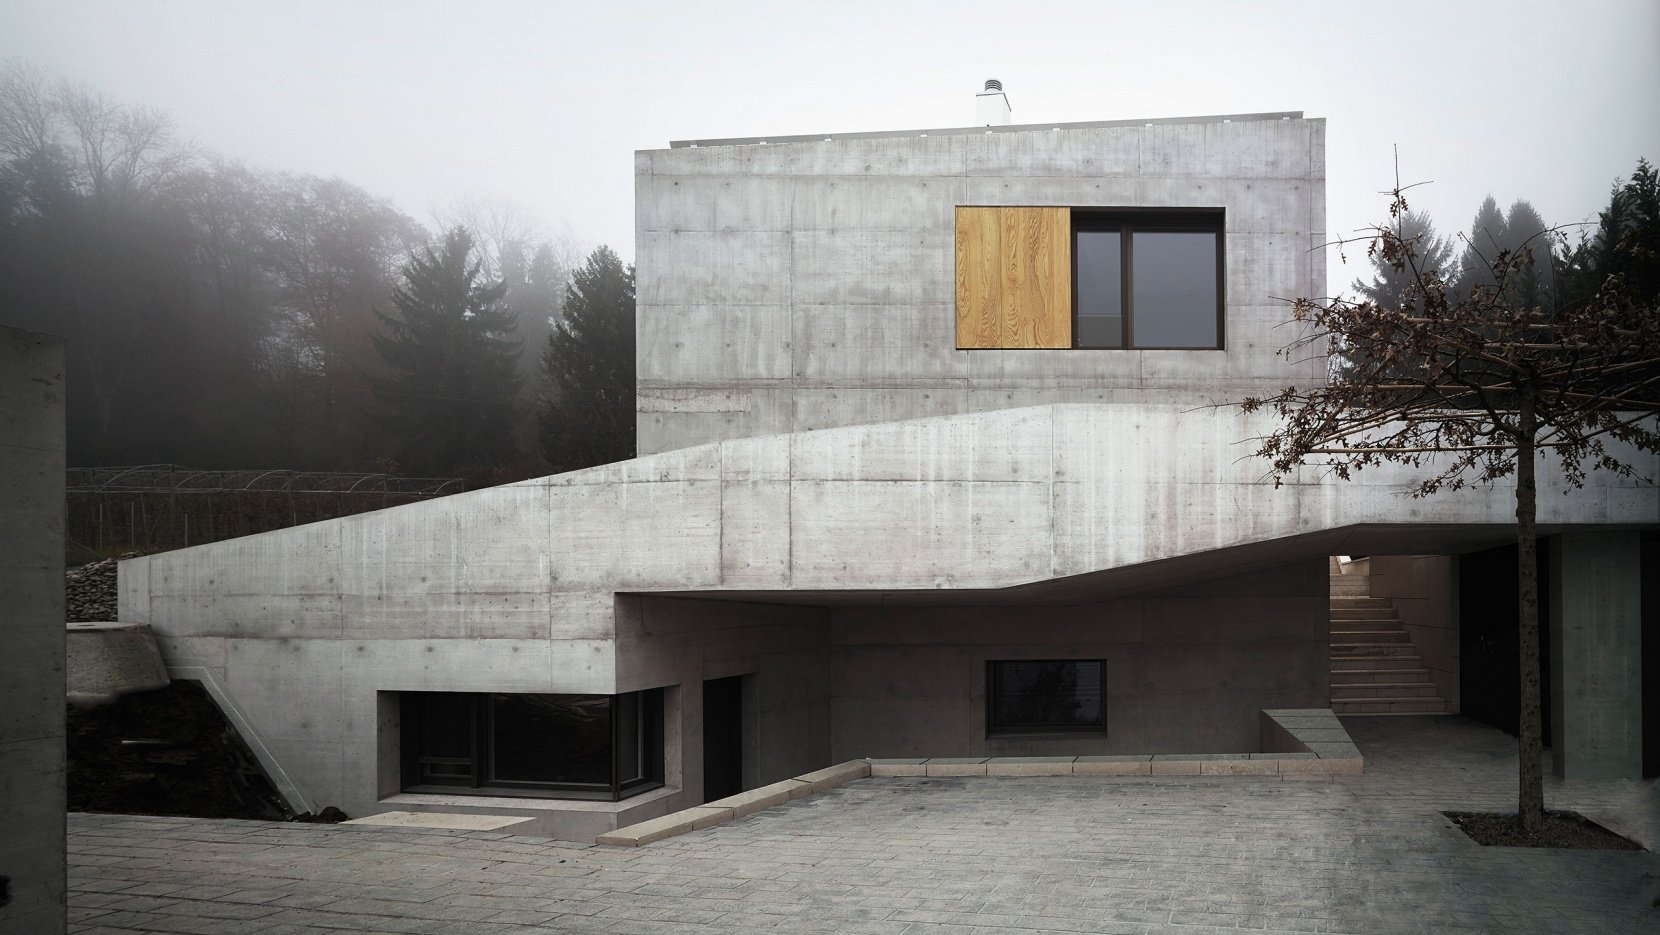 Villa ensemble near zurich switzerland by afgh architects for Villa architect